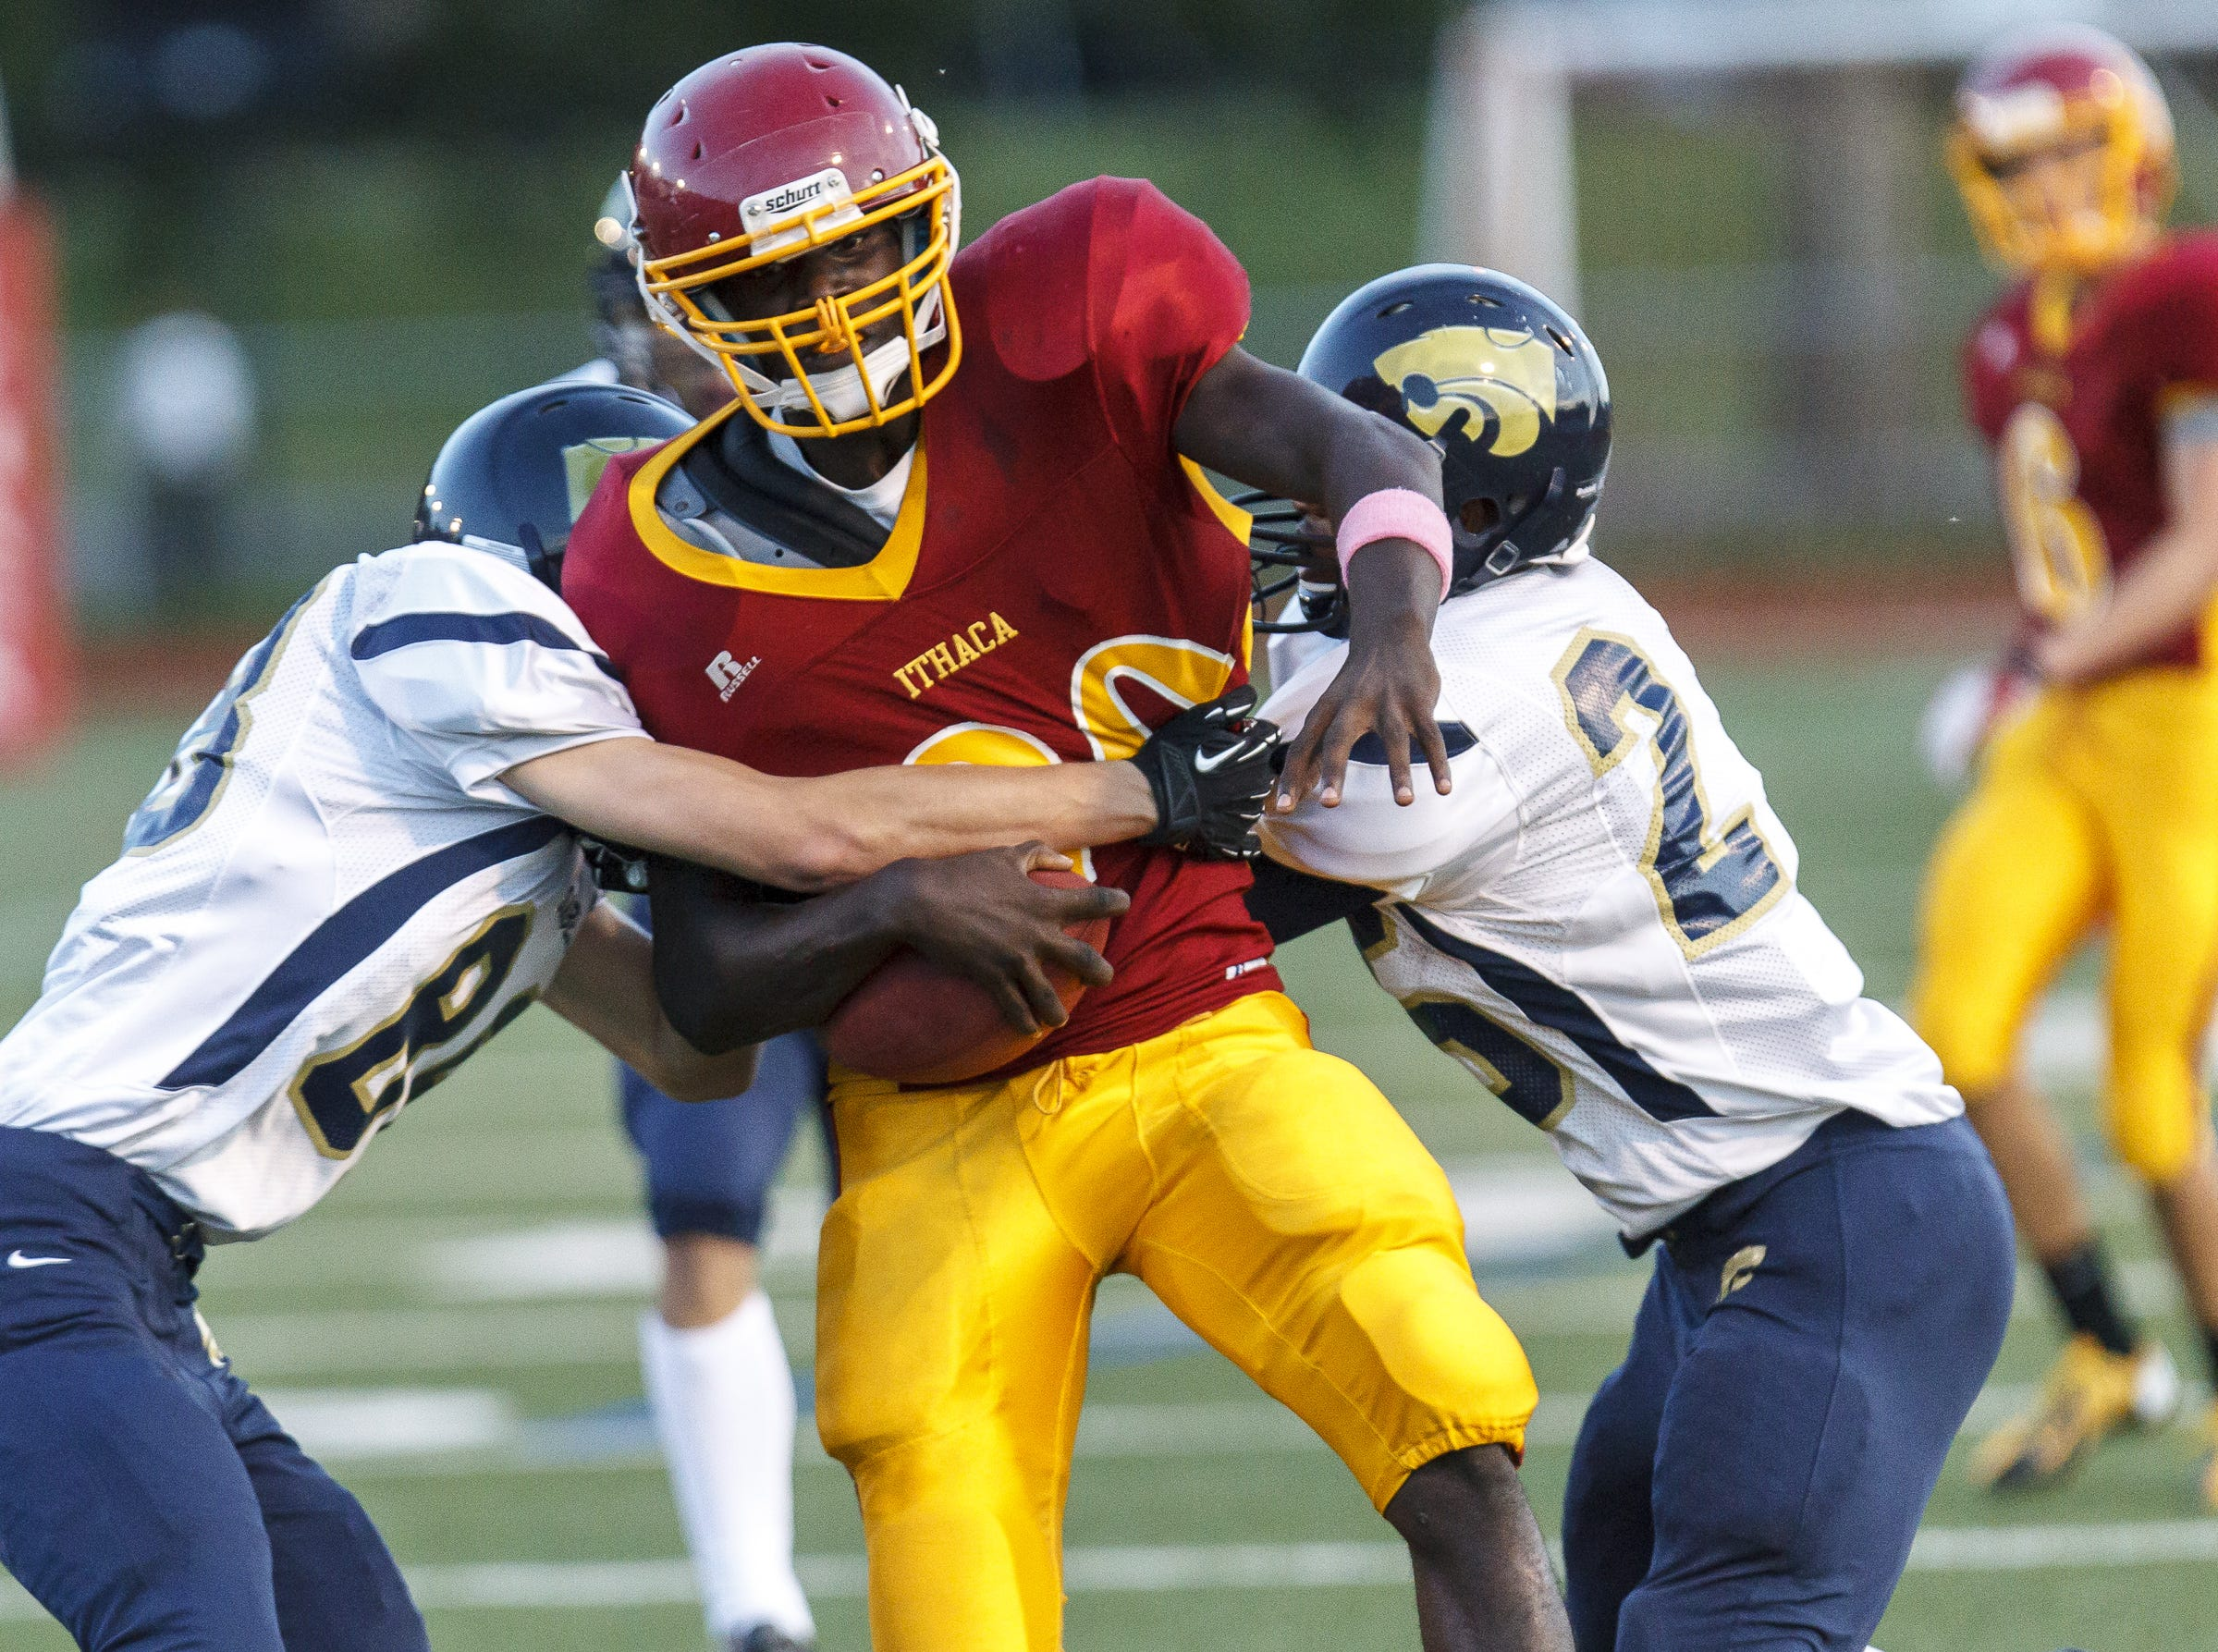 From 2013: Ithaca's DJ Davis is tackled by Susquehanna Valley's Corey Ewanow and Marquis Jackson on Friday.